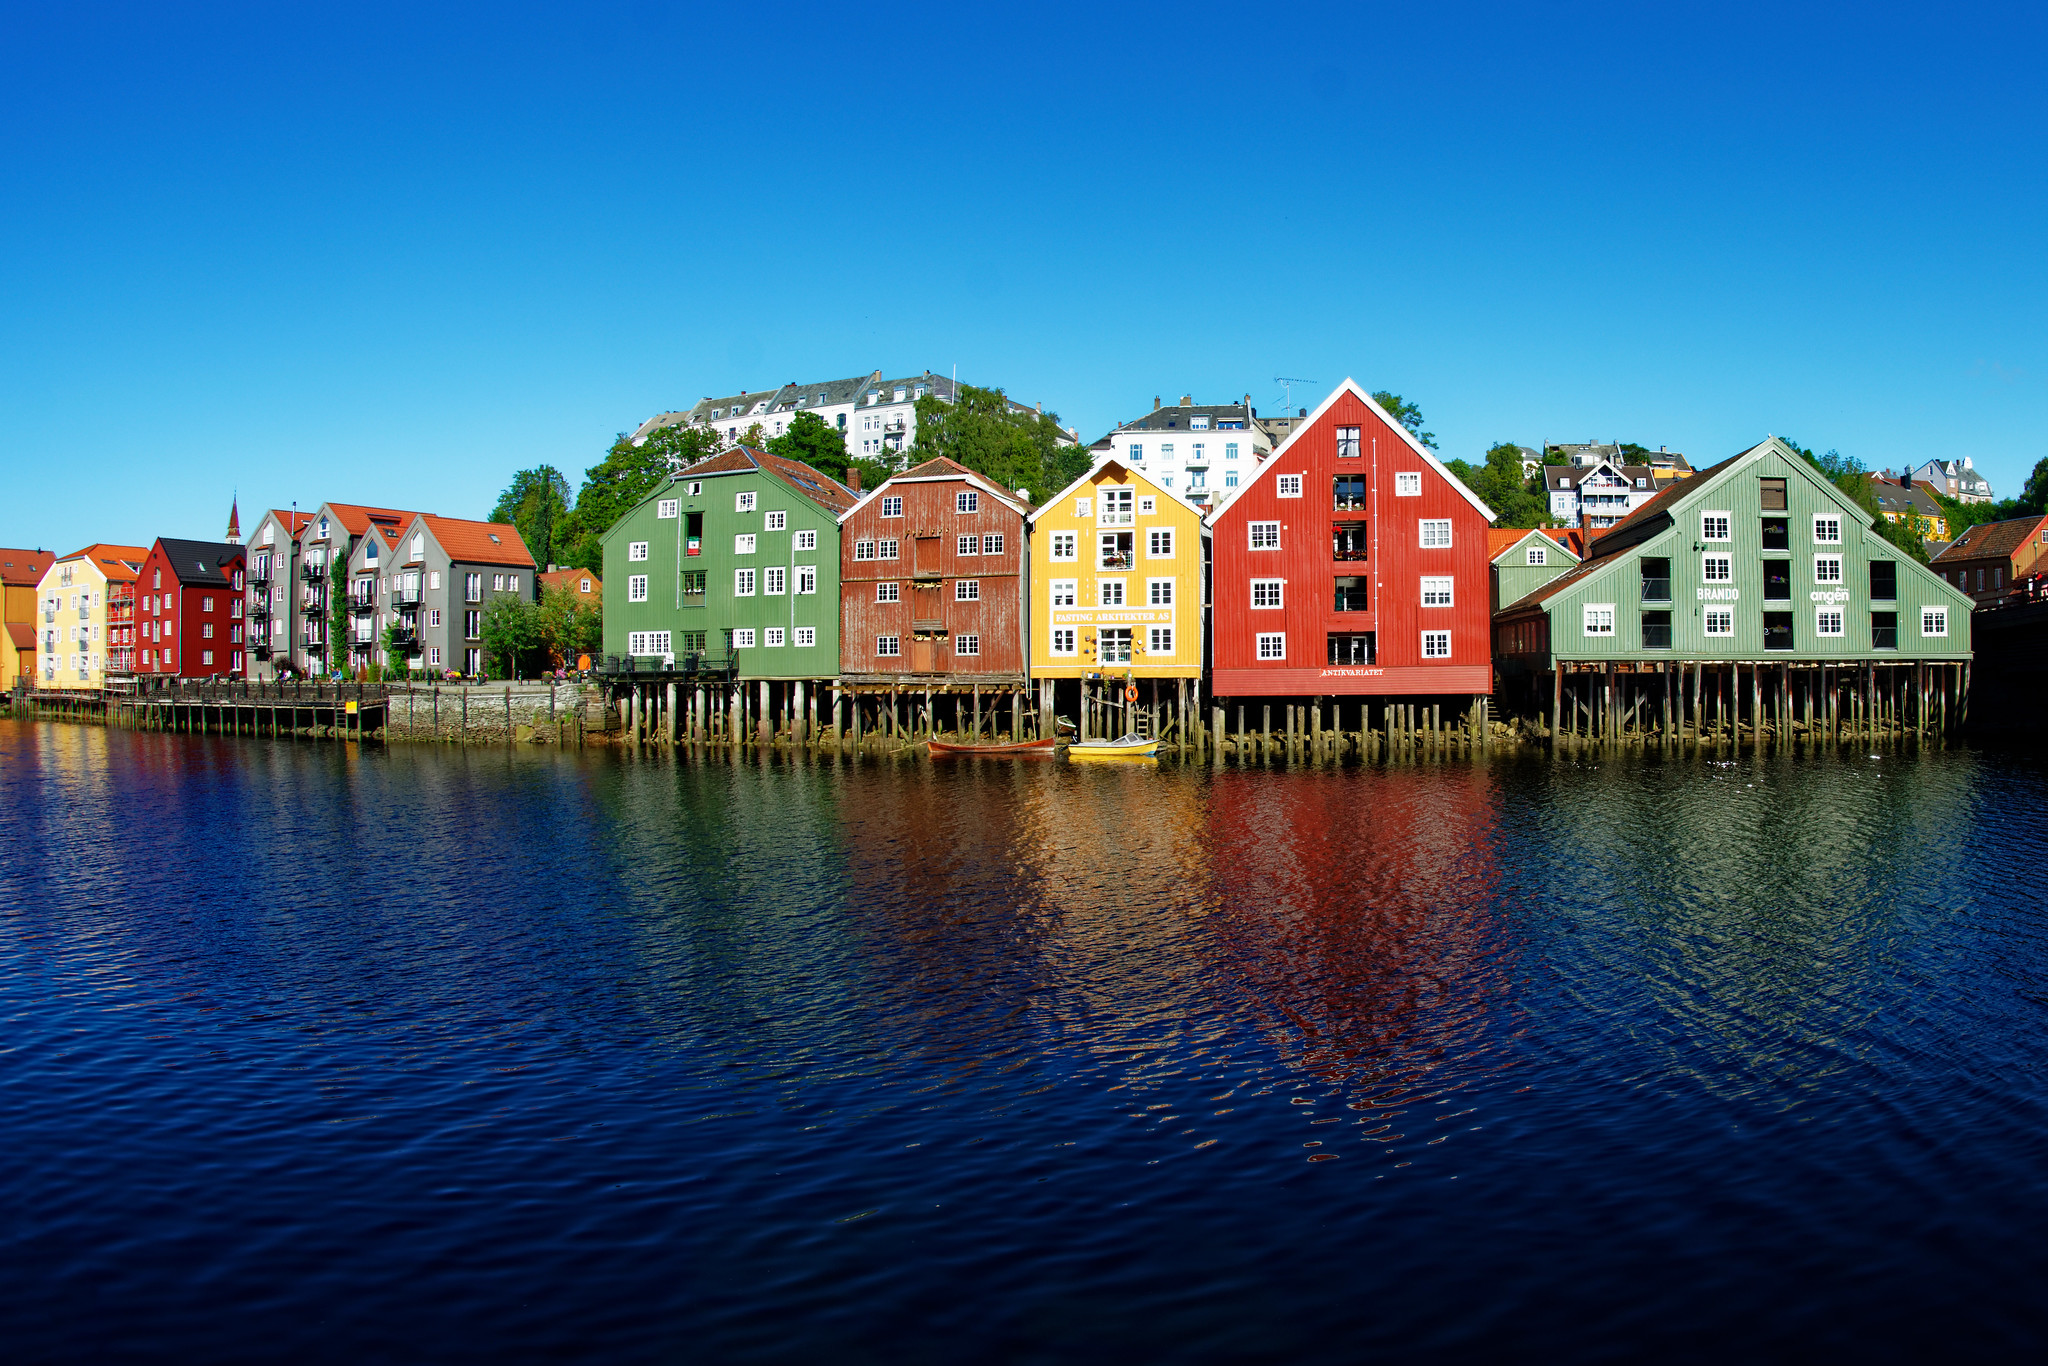 The Wharves - Trondheim, Norway